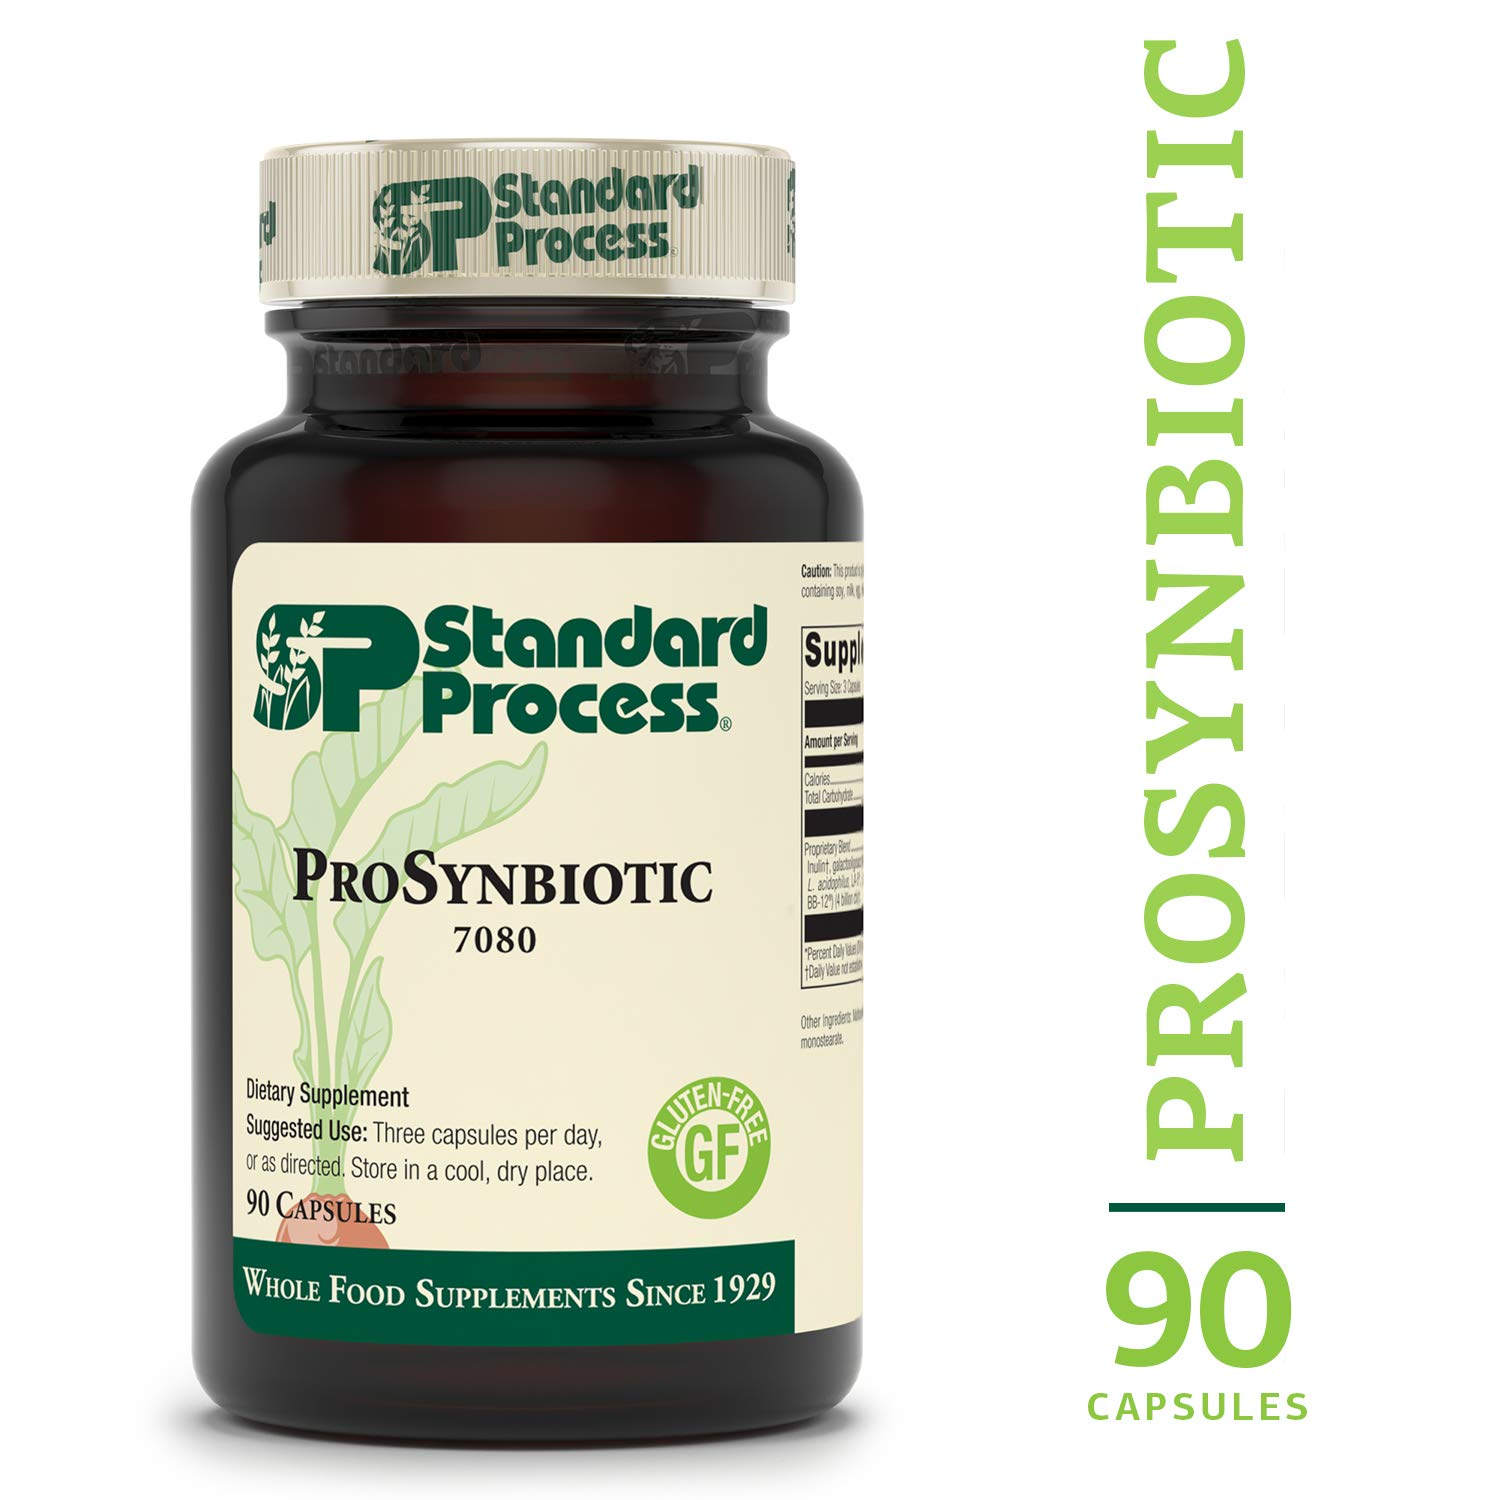 Standard Process - ProSynbiotic - Probiotic and Prebiotic Blend to Support Gut Flora and Overall Intestinal Health, Improves Nutrient Digestion, Gluten Free - 90 Capsules